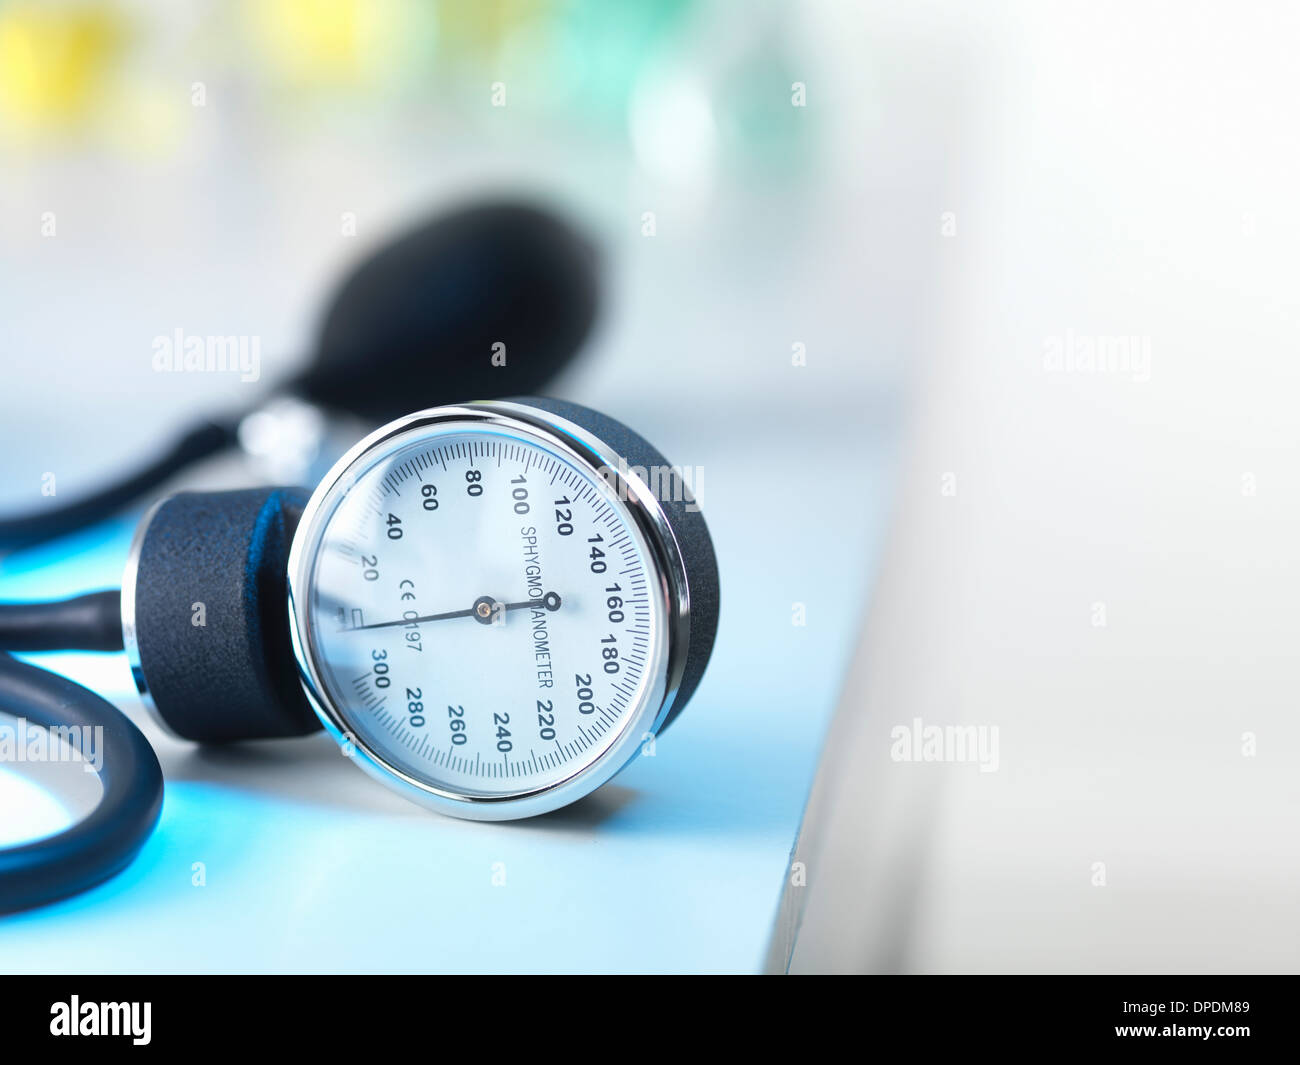 Manomètre de pression sanguine en chirurgie Médecins Photo Stock